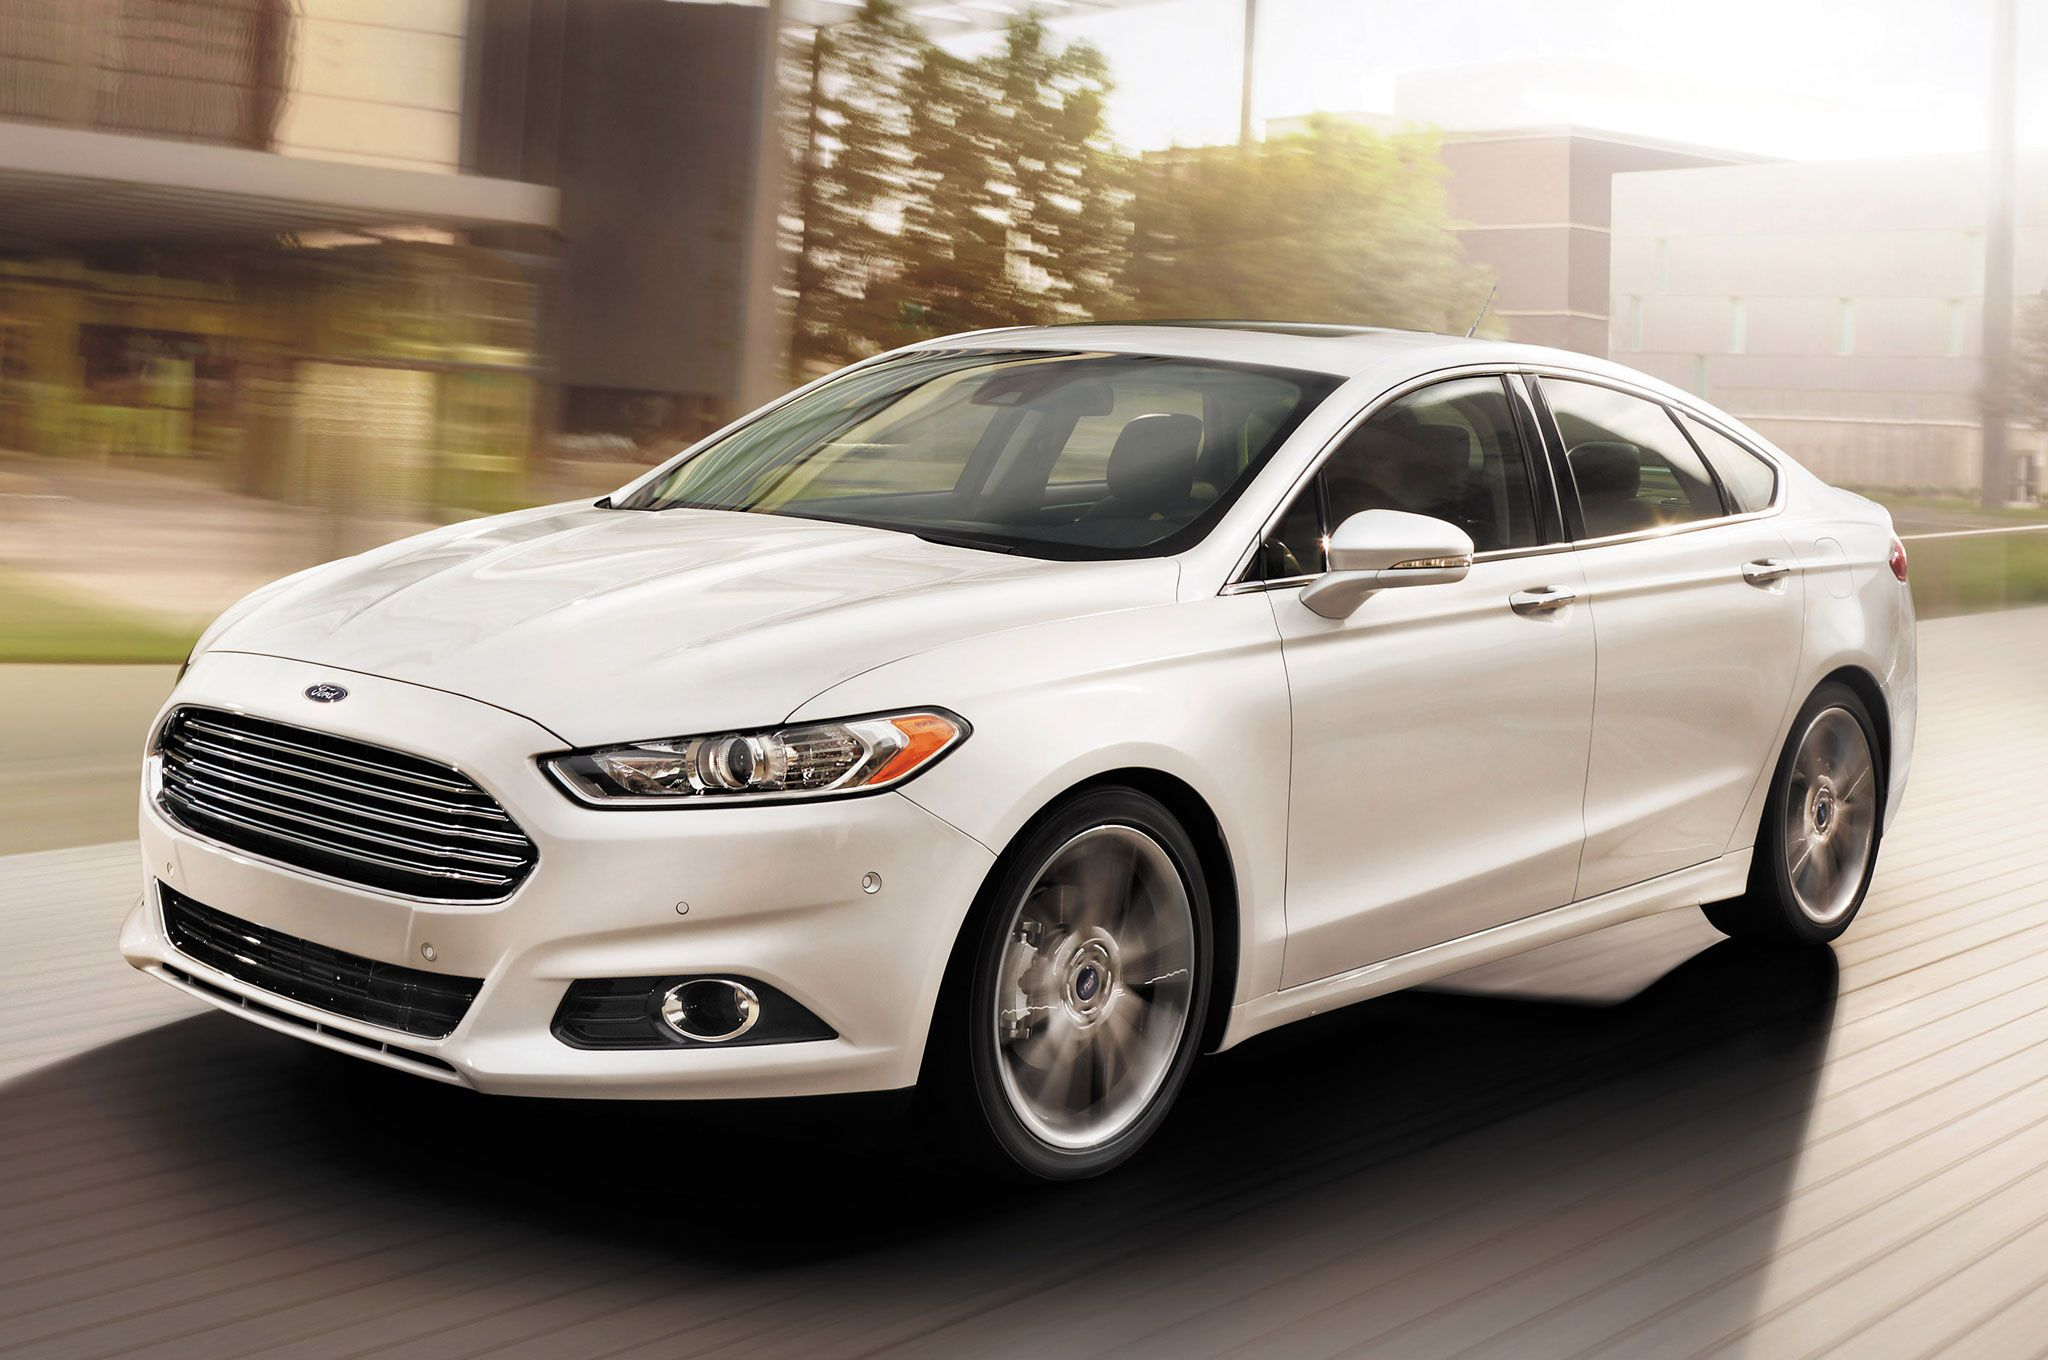 Lease Ford Fusion >> Pin By Walls Auto On Cool Car Wallpapers Ford Fusion Ford